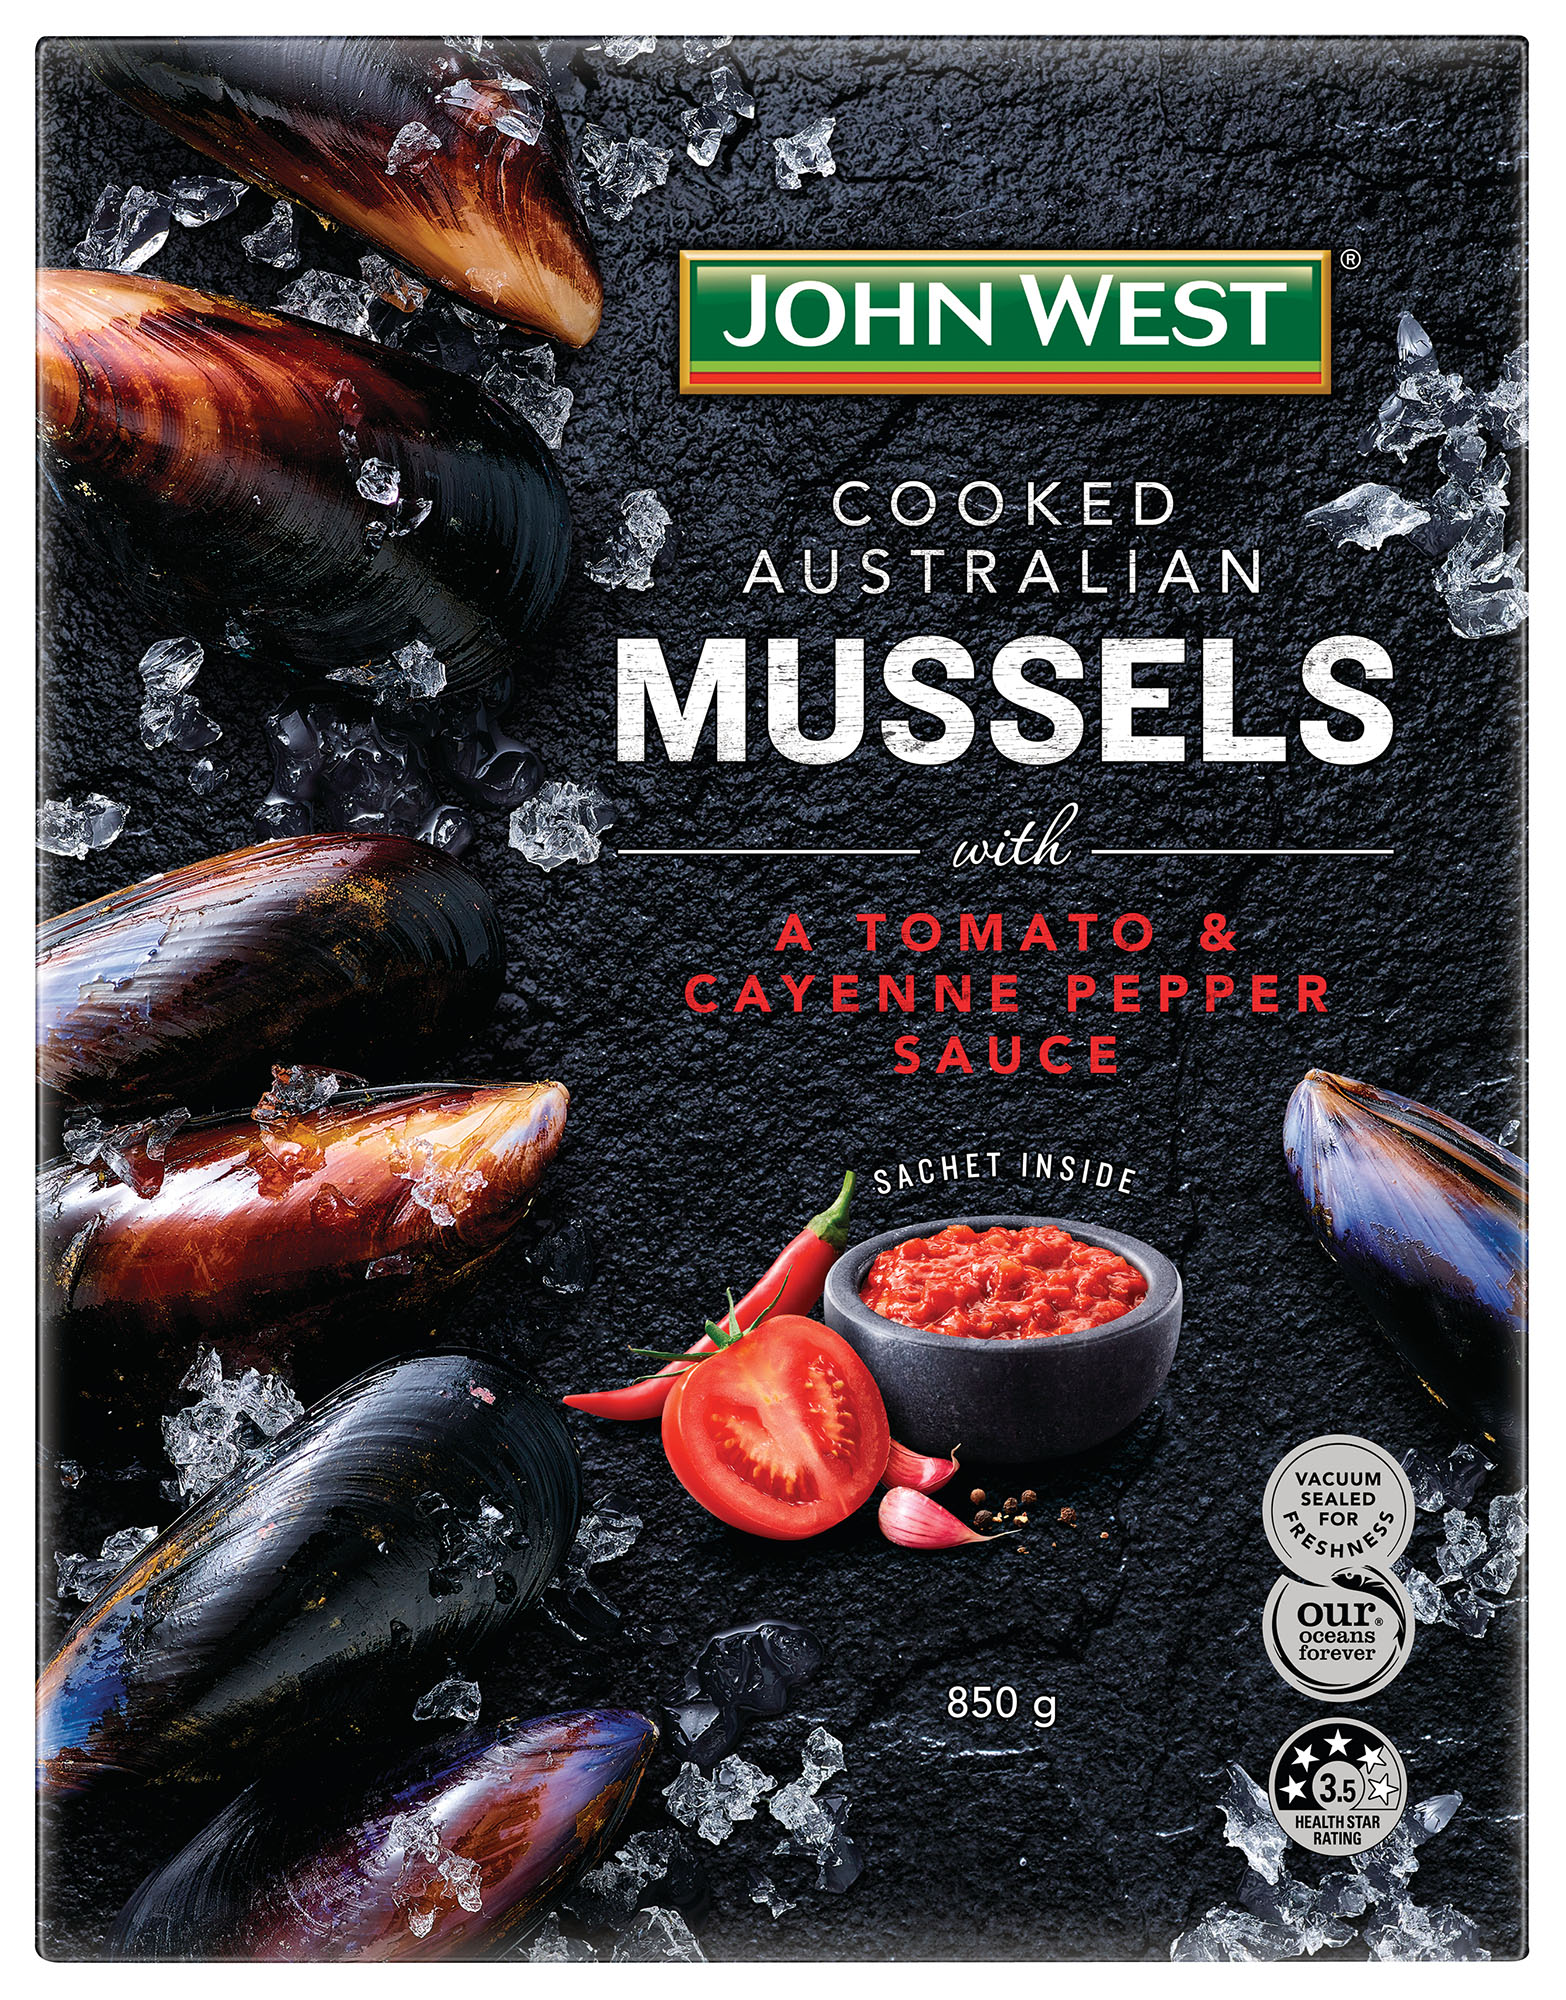 John West Mussels FMCG Ad Packaging Food styling